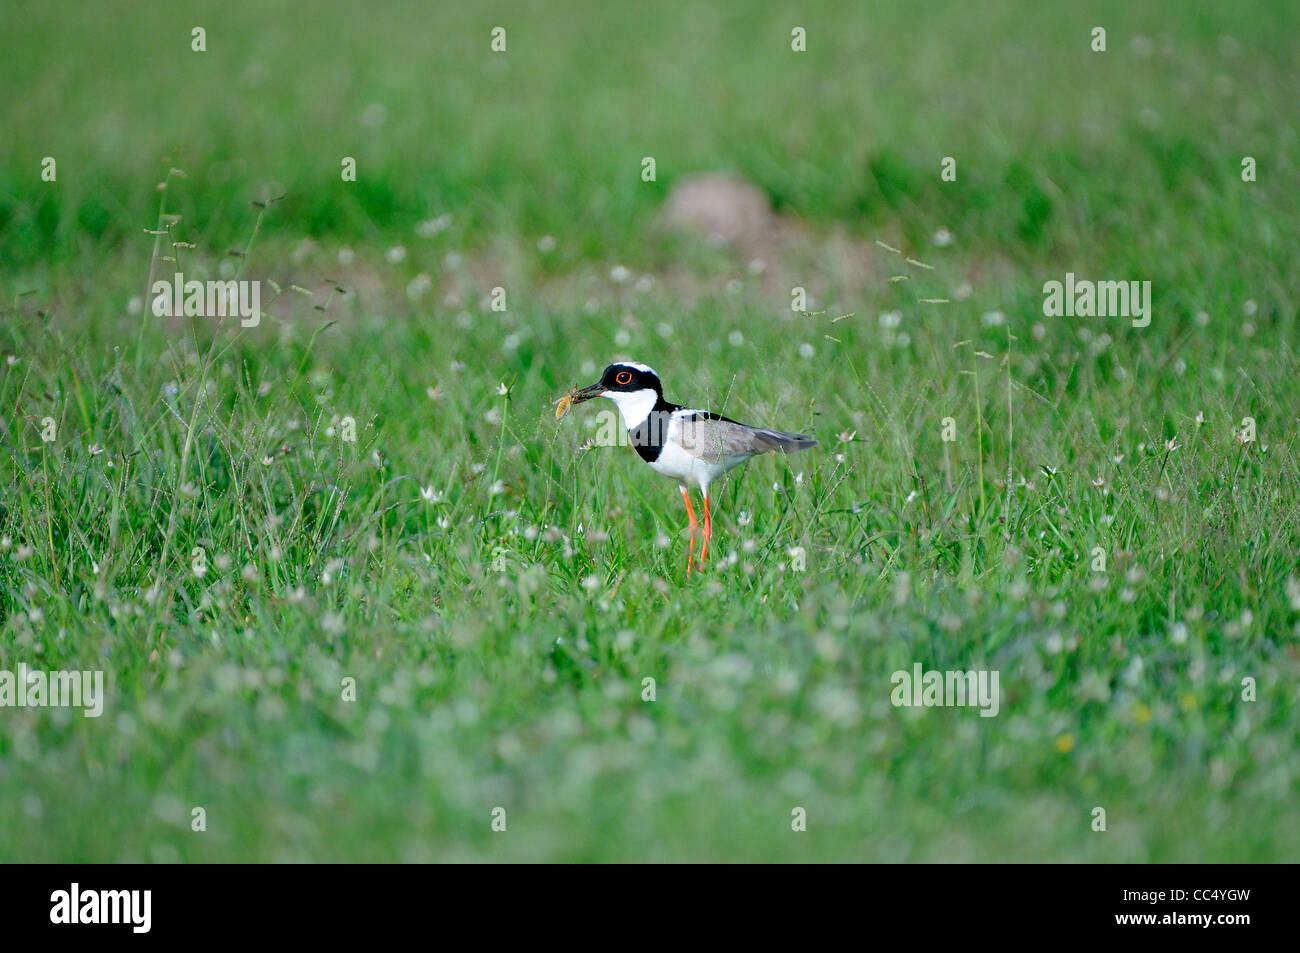 Pied Lapwing (Vanellus caryanus) stood in grass with insect in beak, Iwokrama rainforest, Guyana - Stock Image